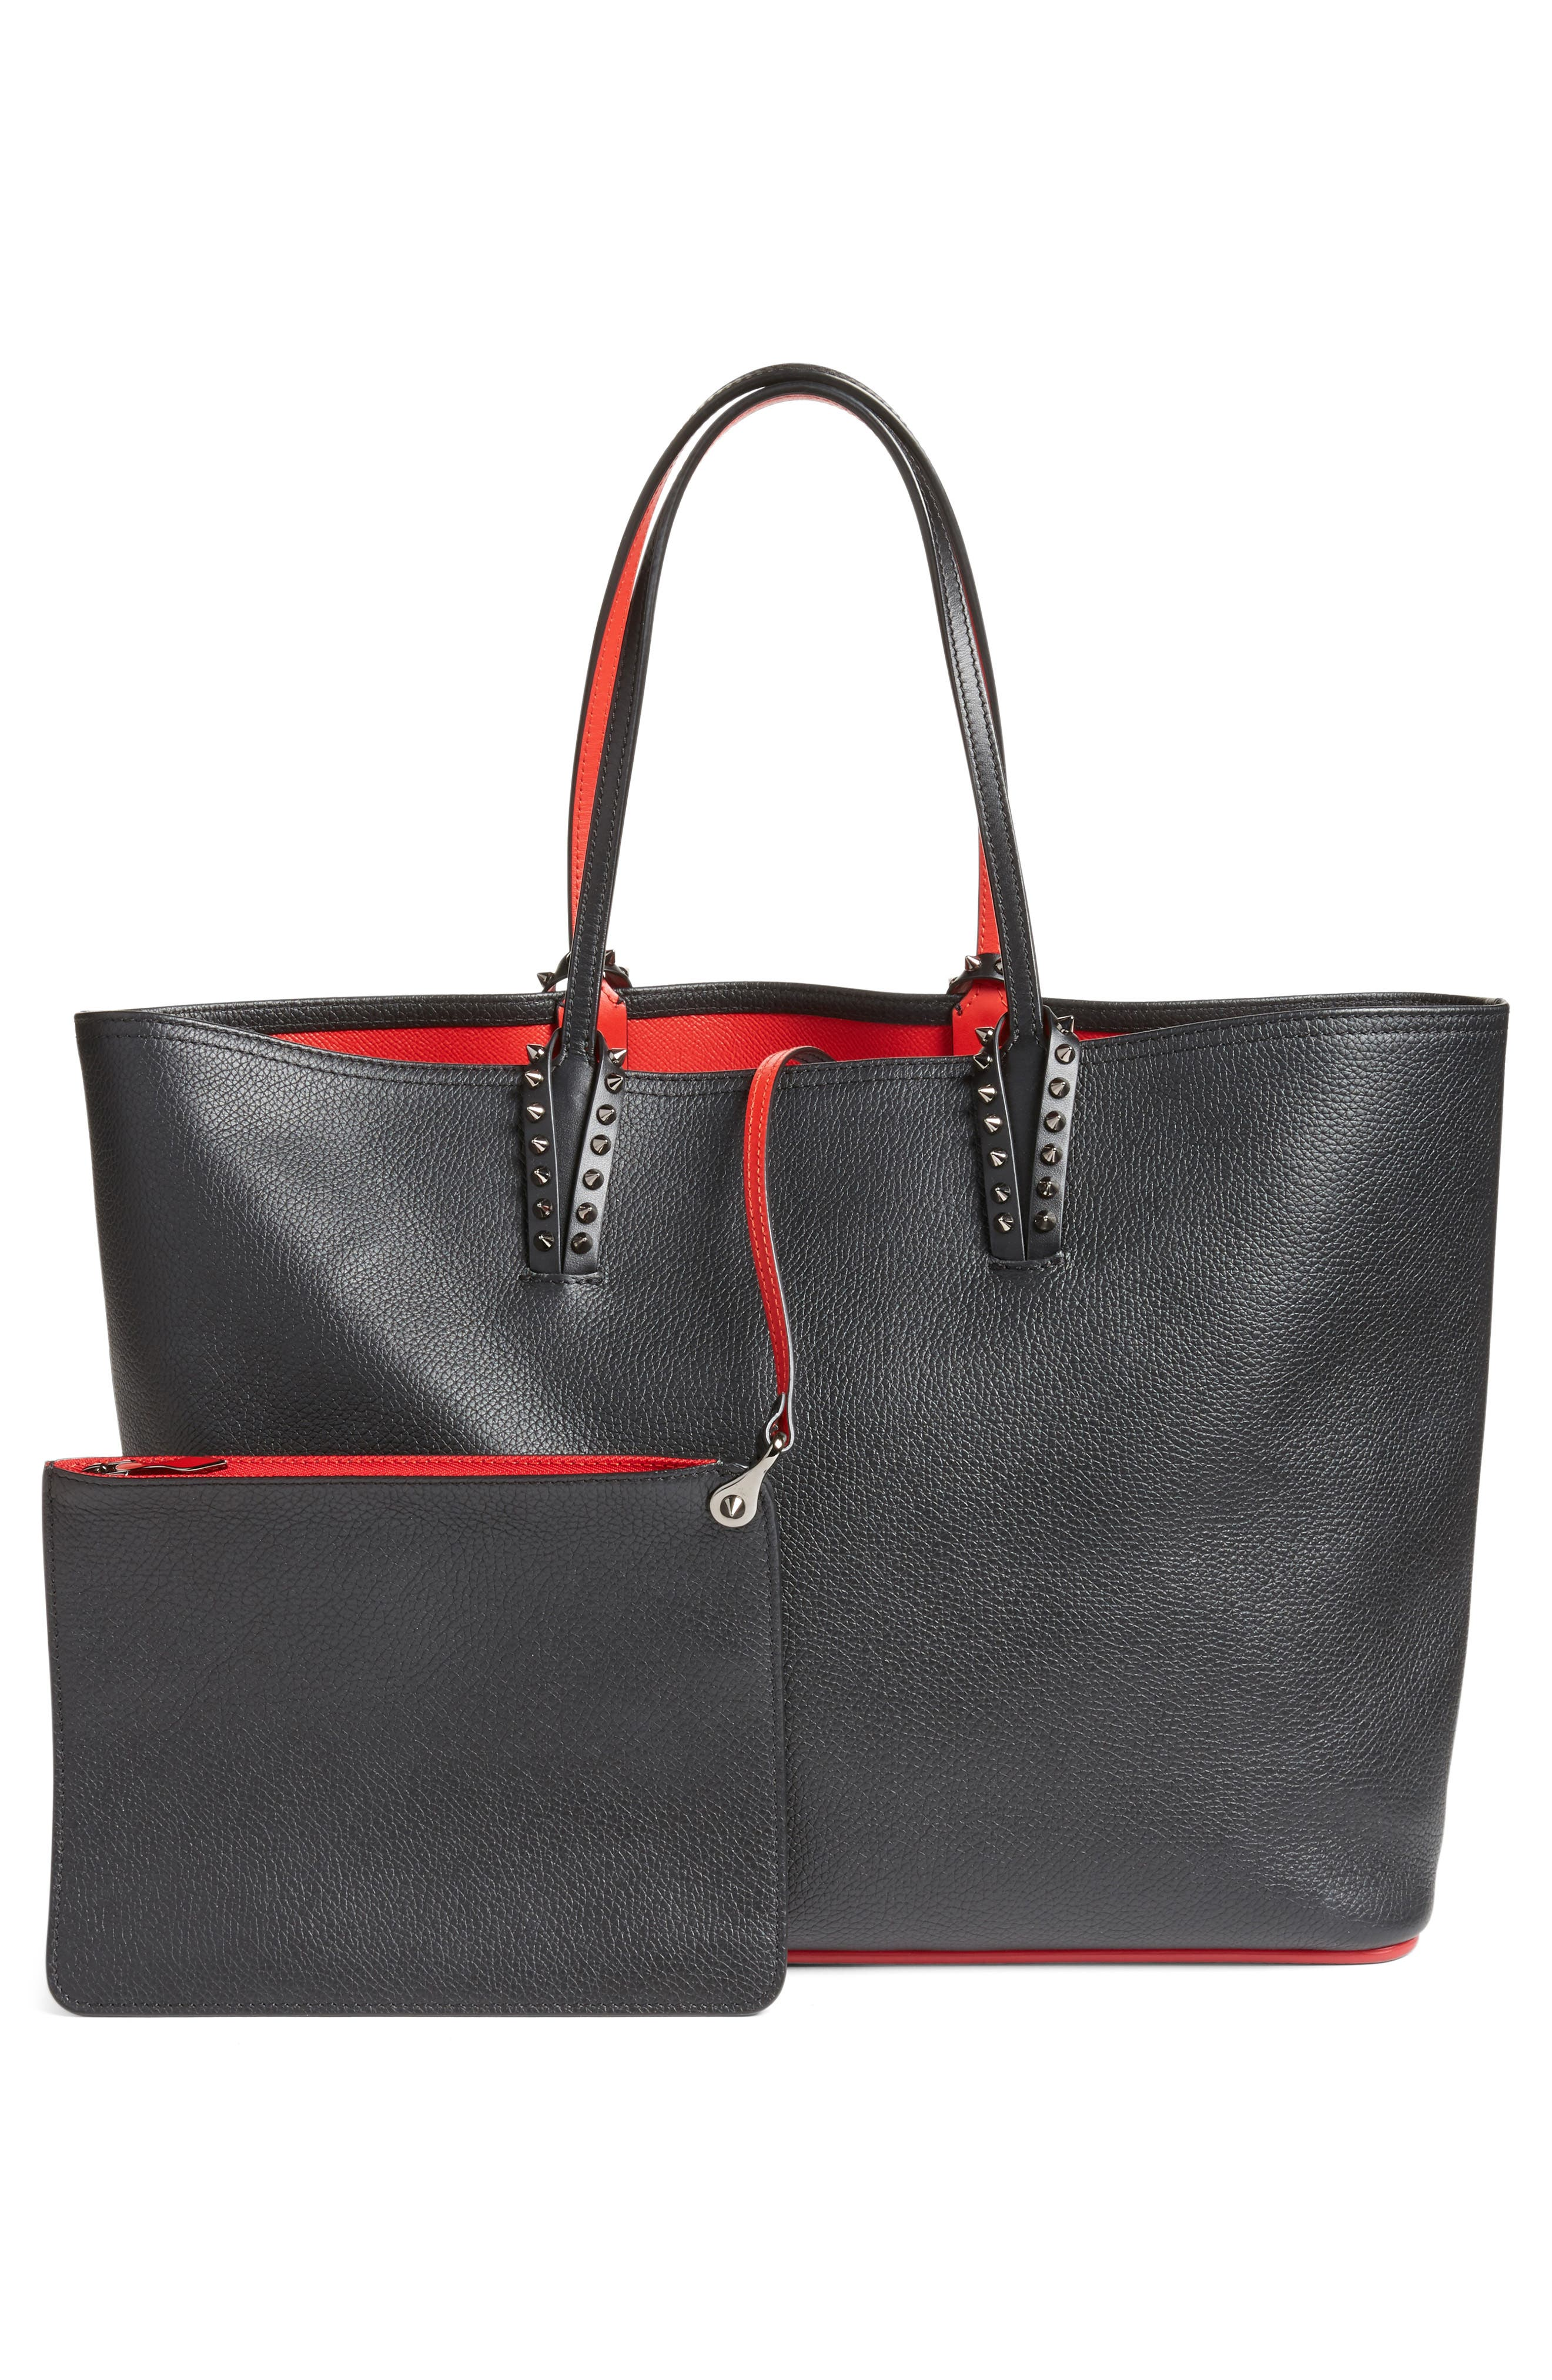 Cabata Calfskin Leather Tote,                             Alternate thumbnail 3, color,                             Black/Black